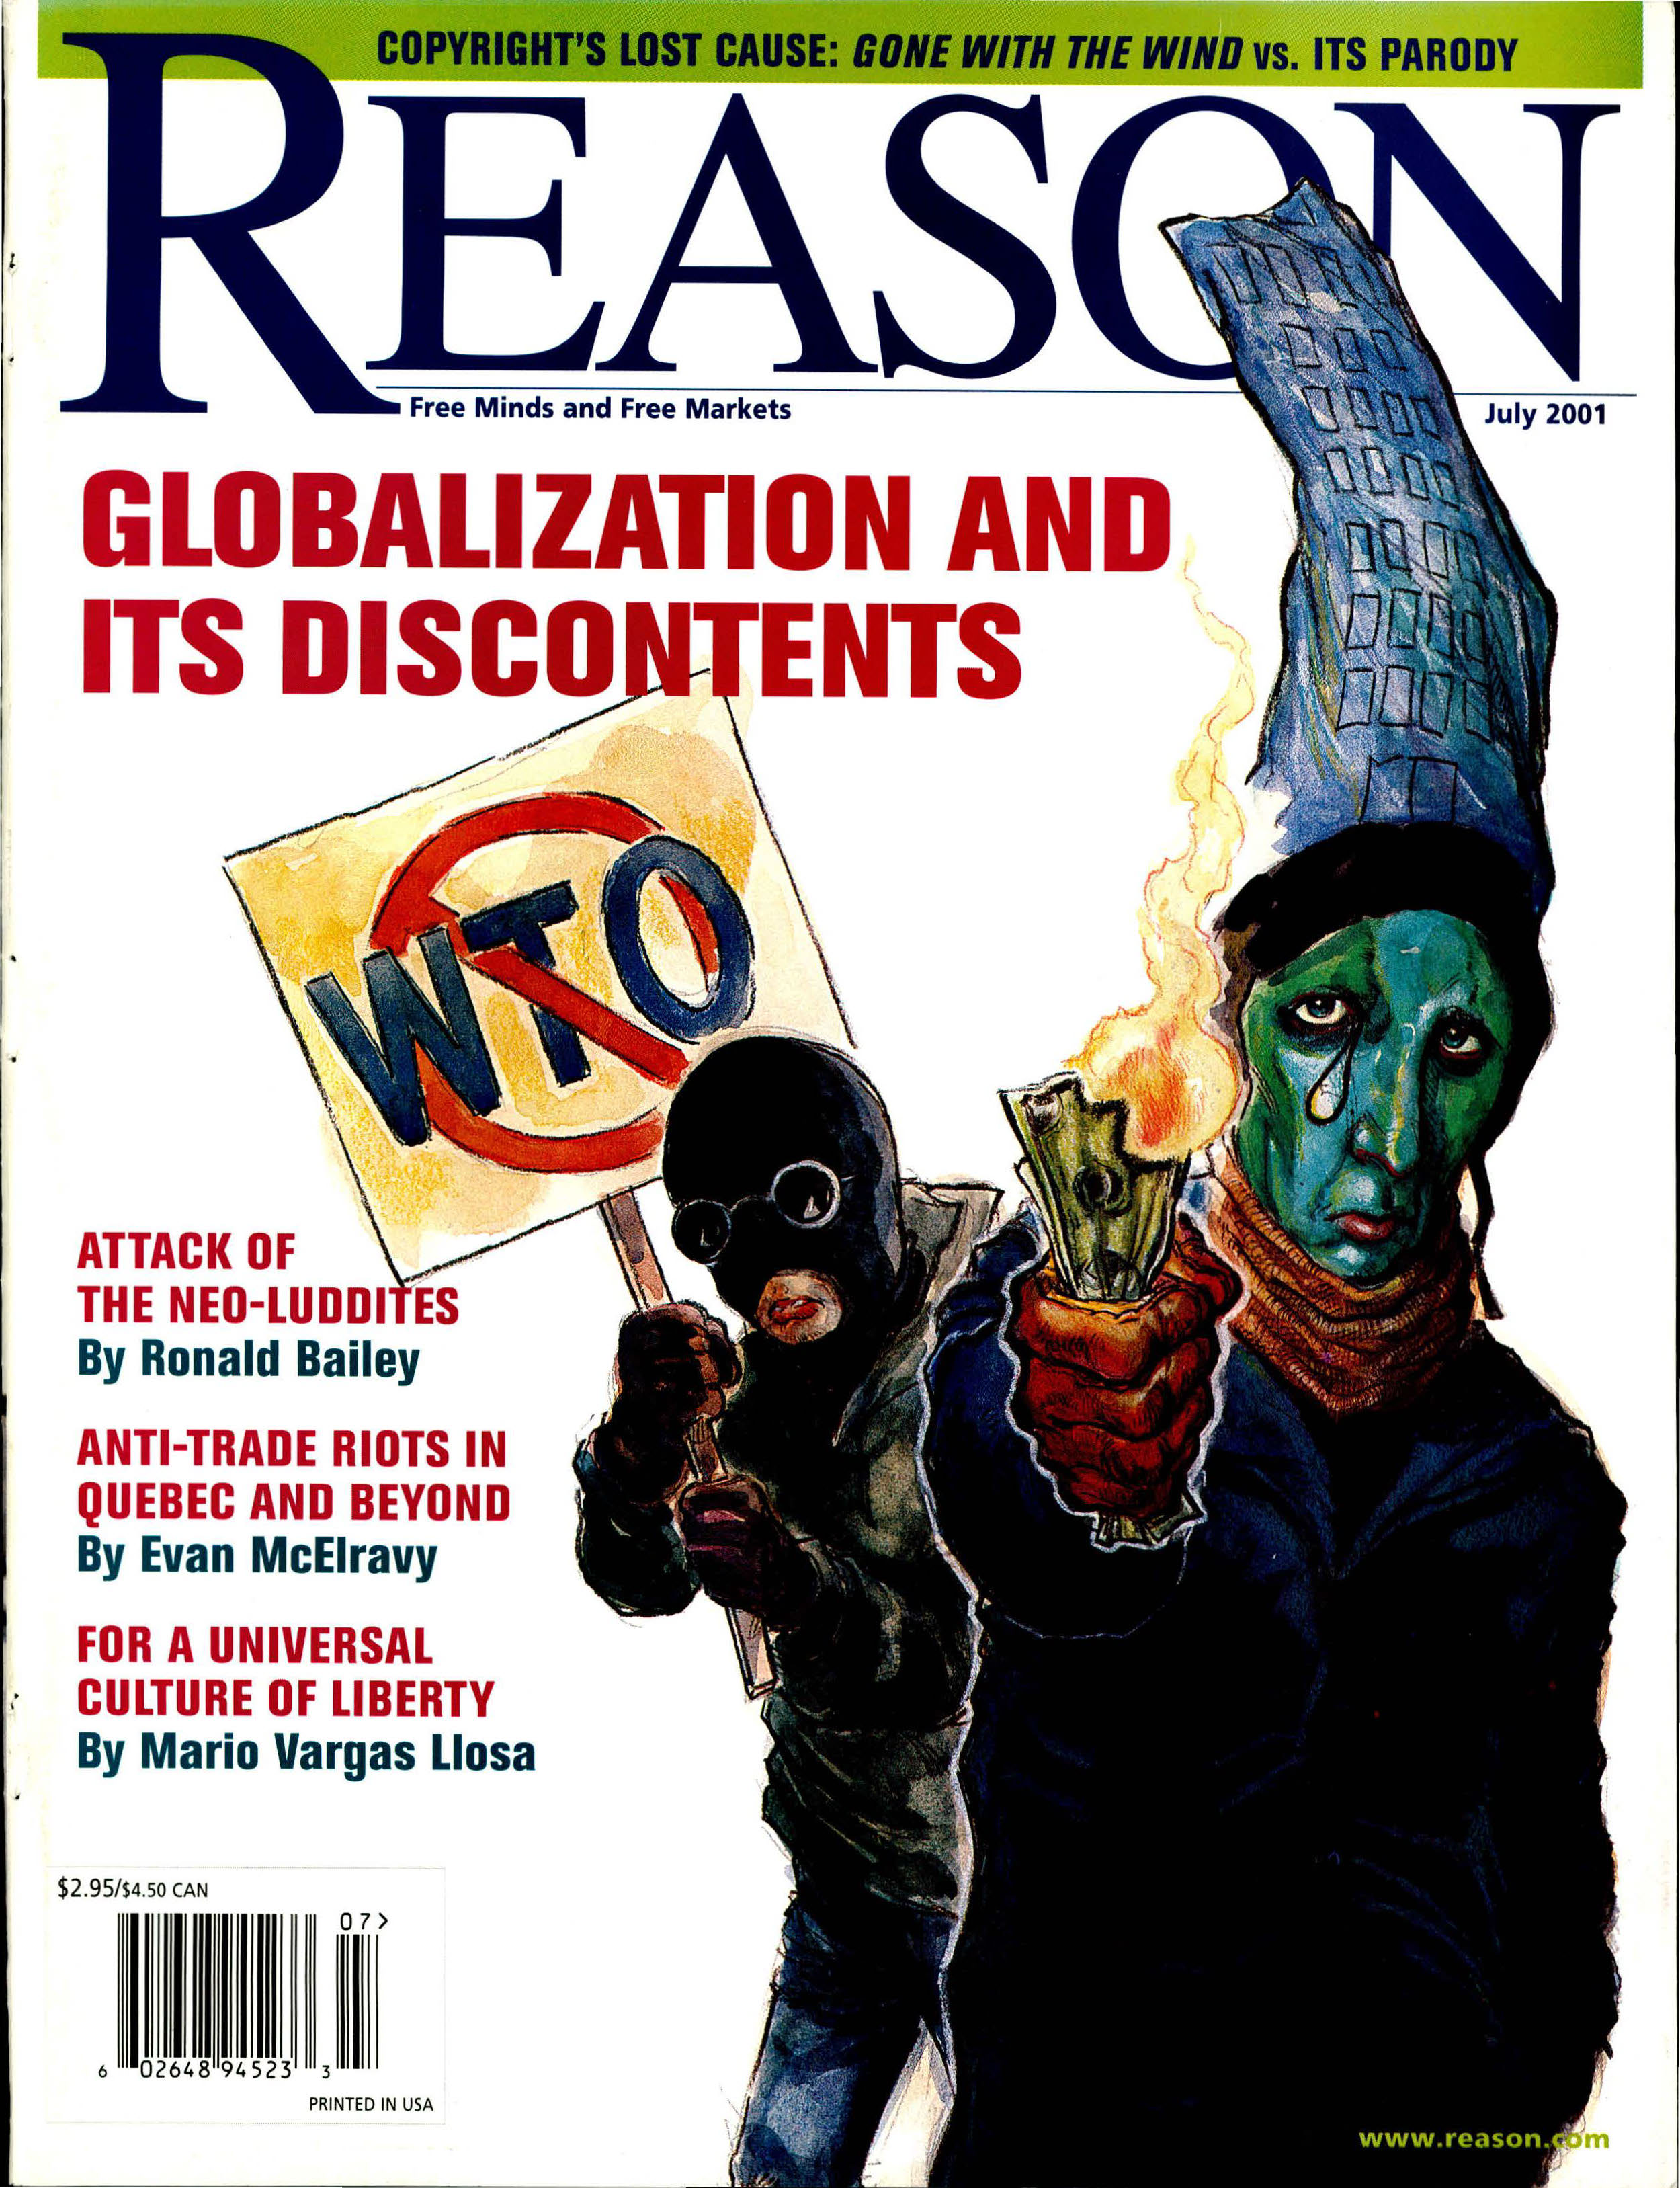 Reason Magazine, July 2001 cover image